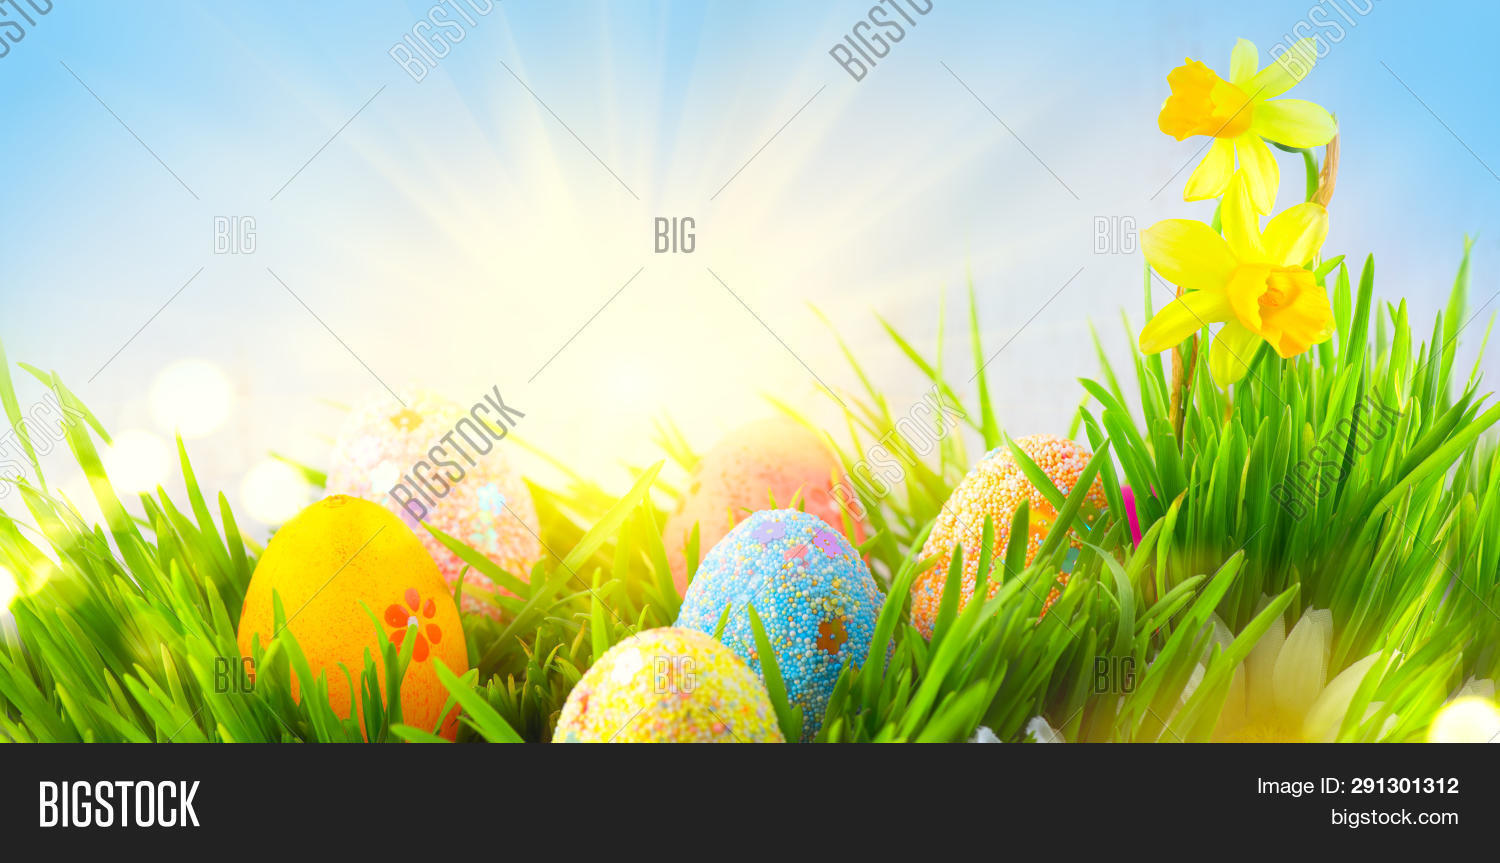 Easter Eggs background. Beautiful colorful eggs in spring grass meadow over blue sky with sun border